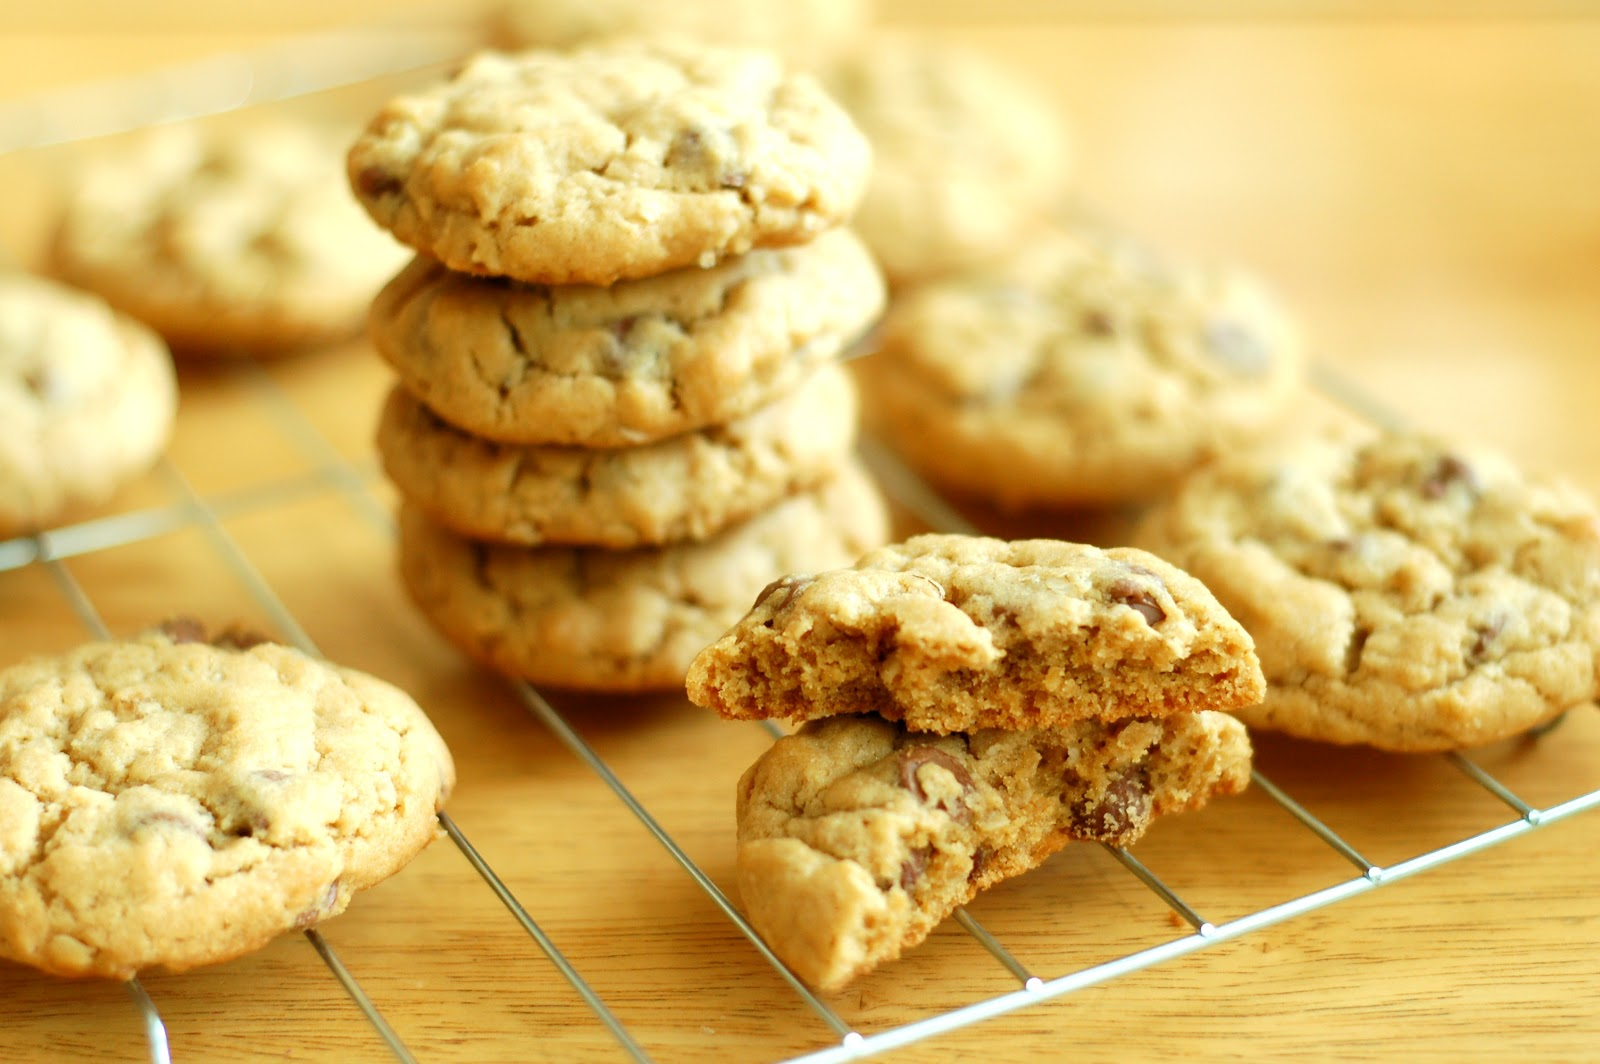 Peanut Butter Chocolate Chip Oatmeal Cookies - A Kitchen Addiction